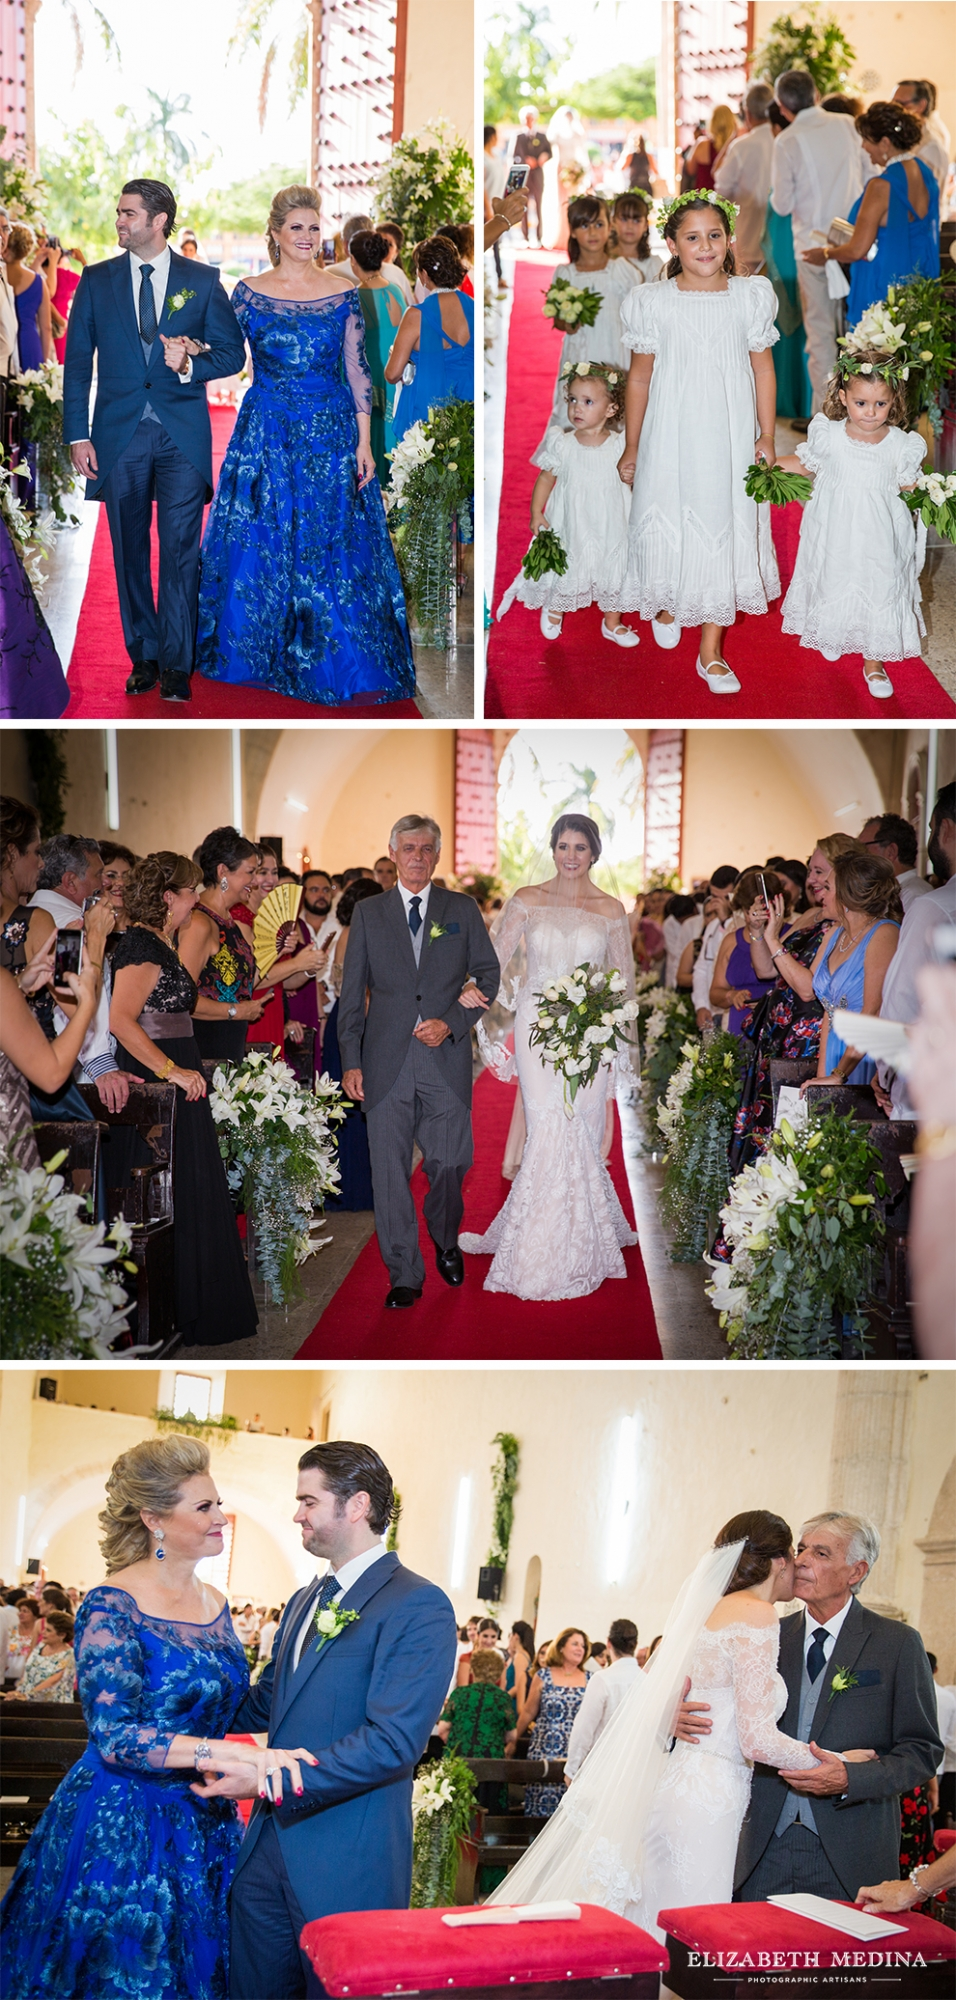 yucatan photographer elizabeth medina photography_005 Yucatan Hacienda Wedding Photography, Nena y Mario